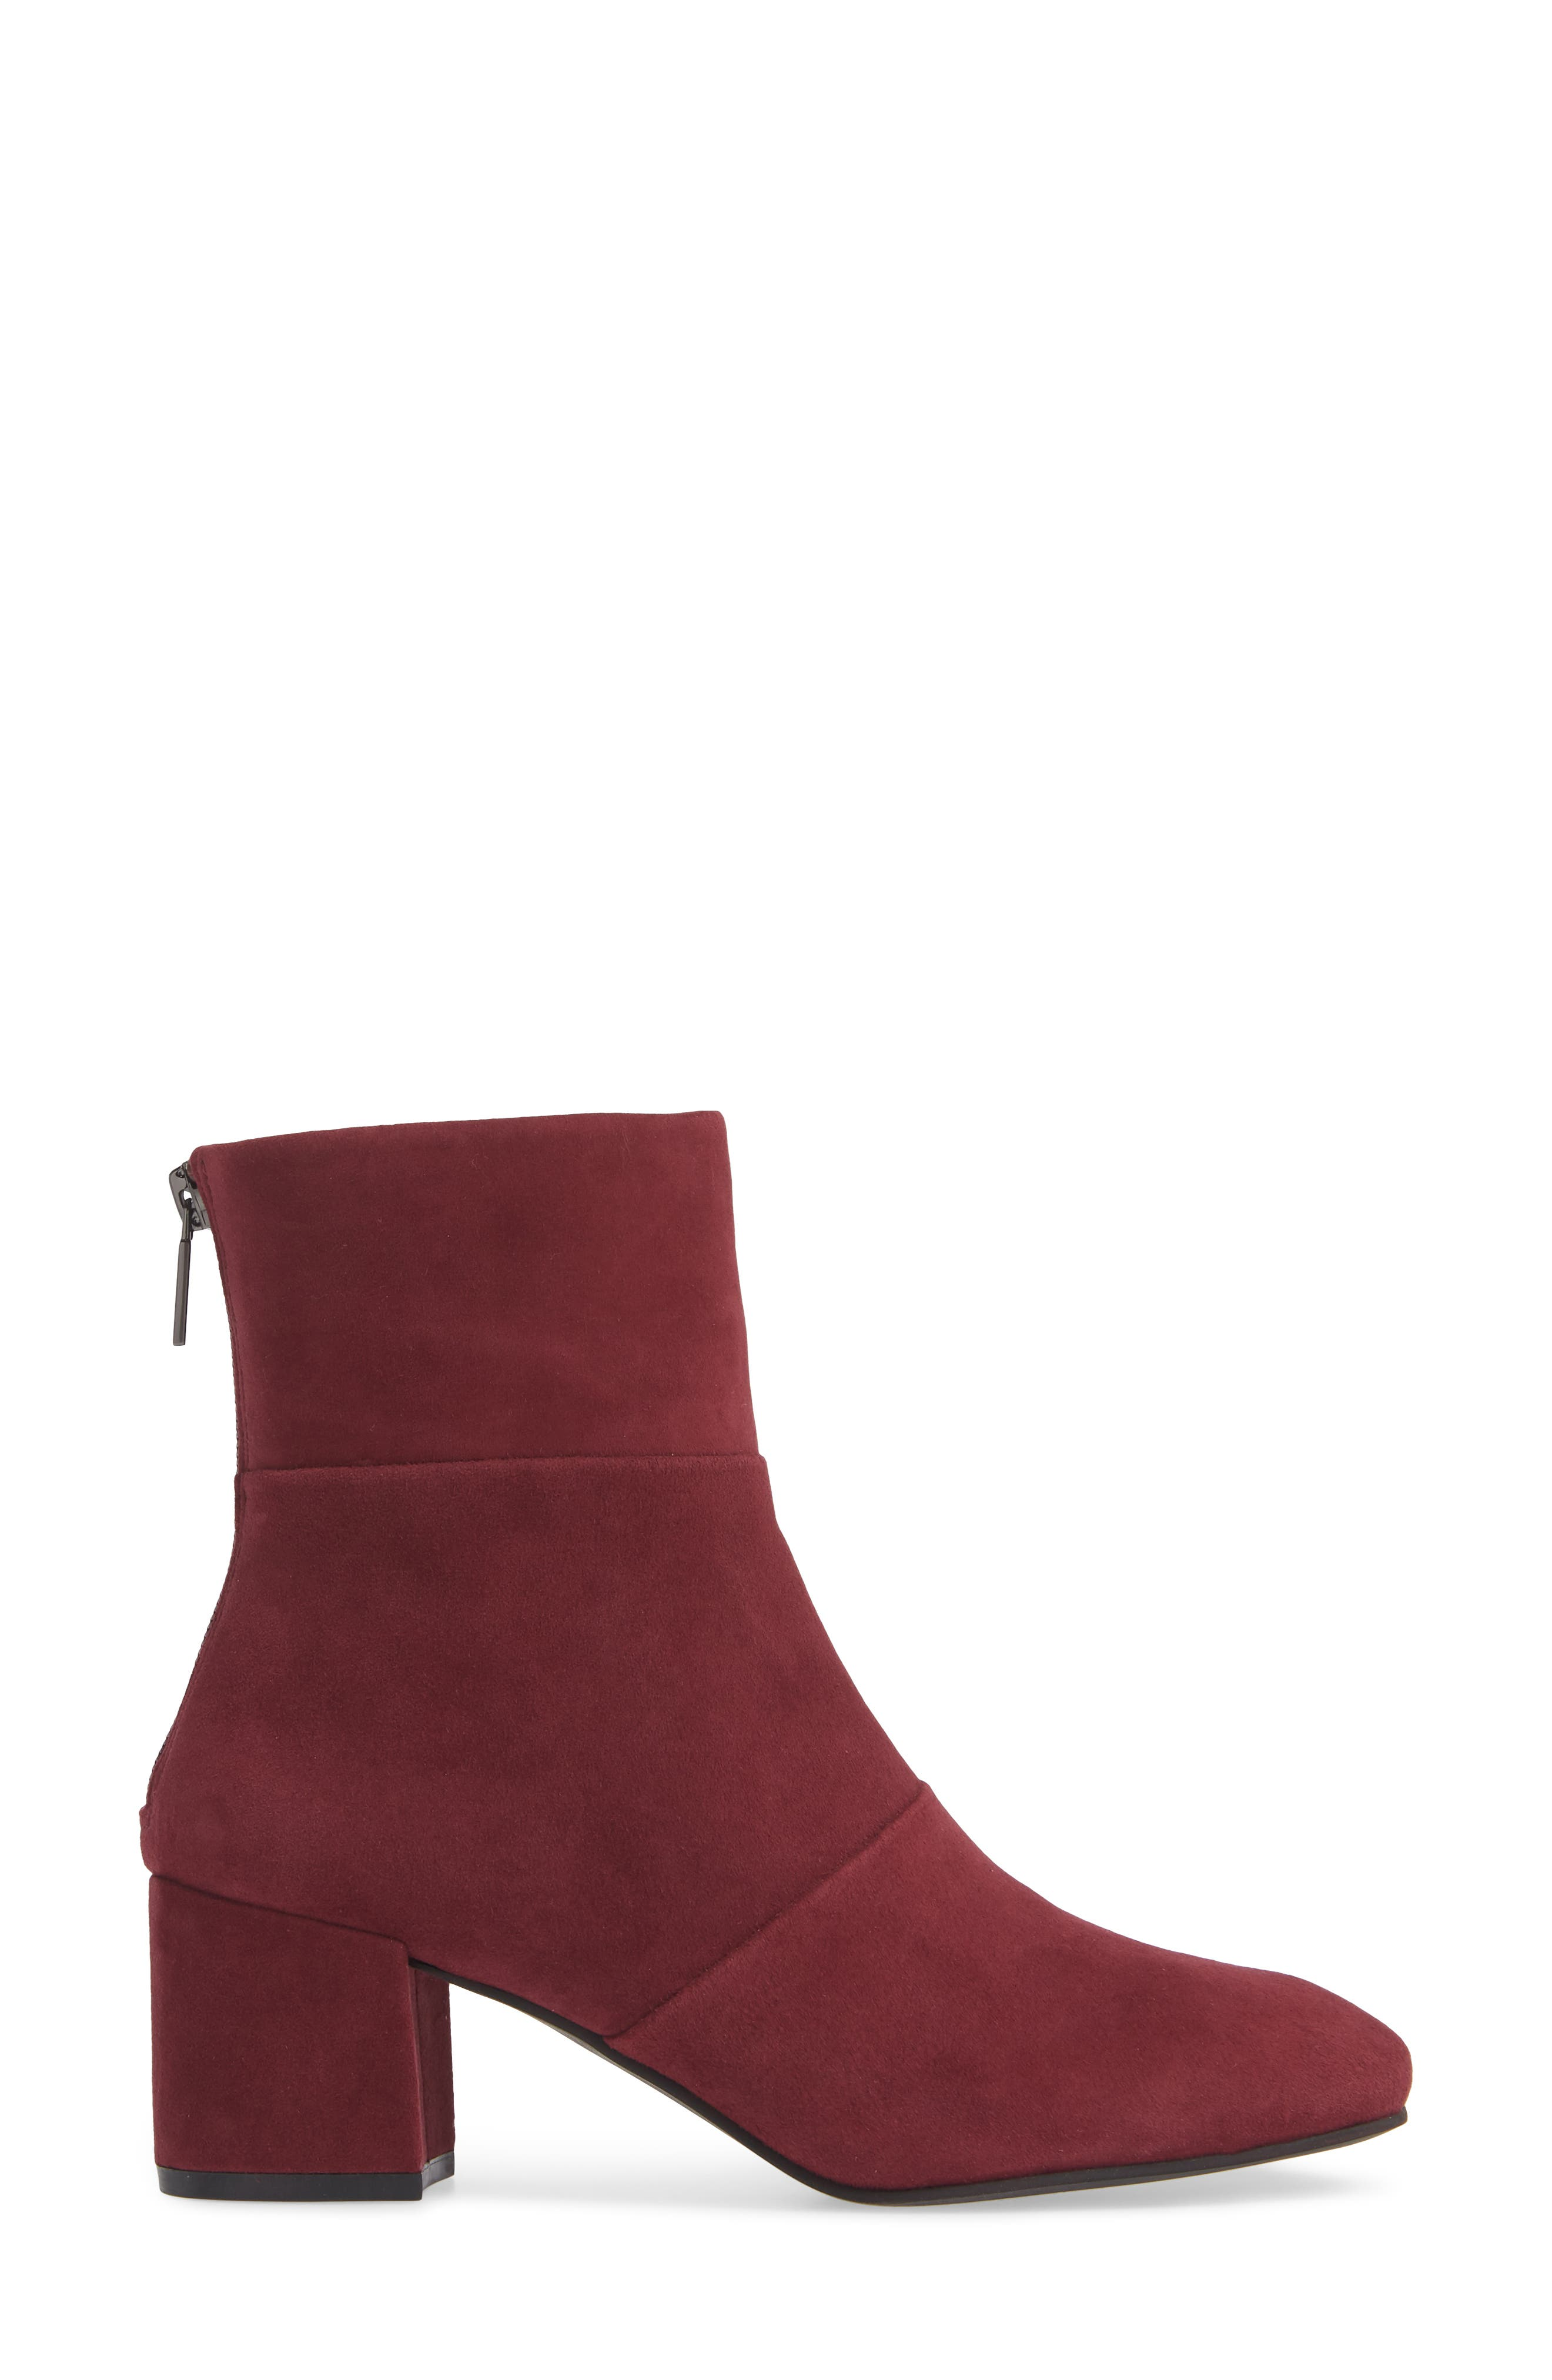 Eryc Bootie,                             Alternate thumbnail 3, color,                             WINE SUEDE